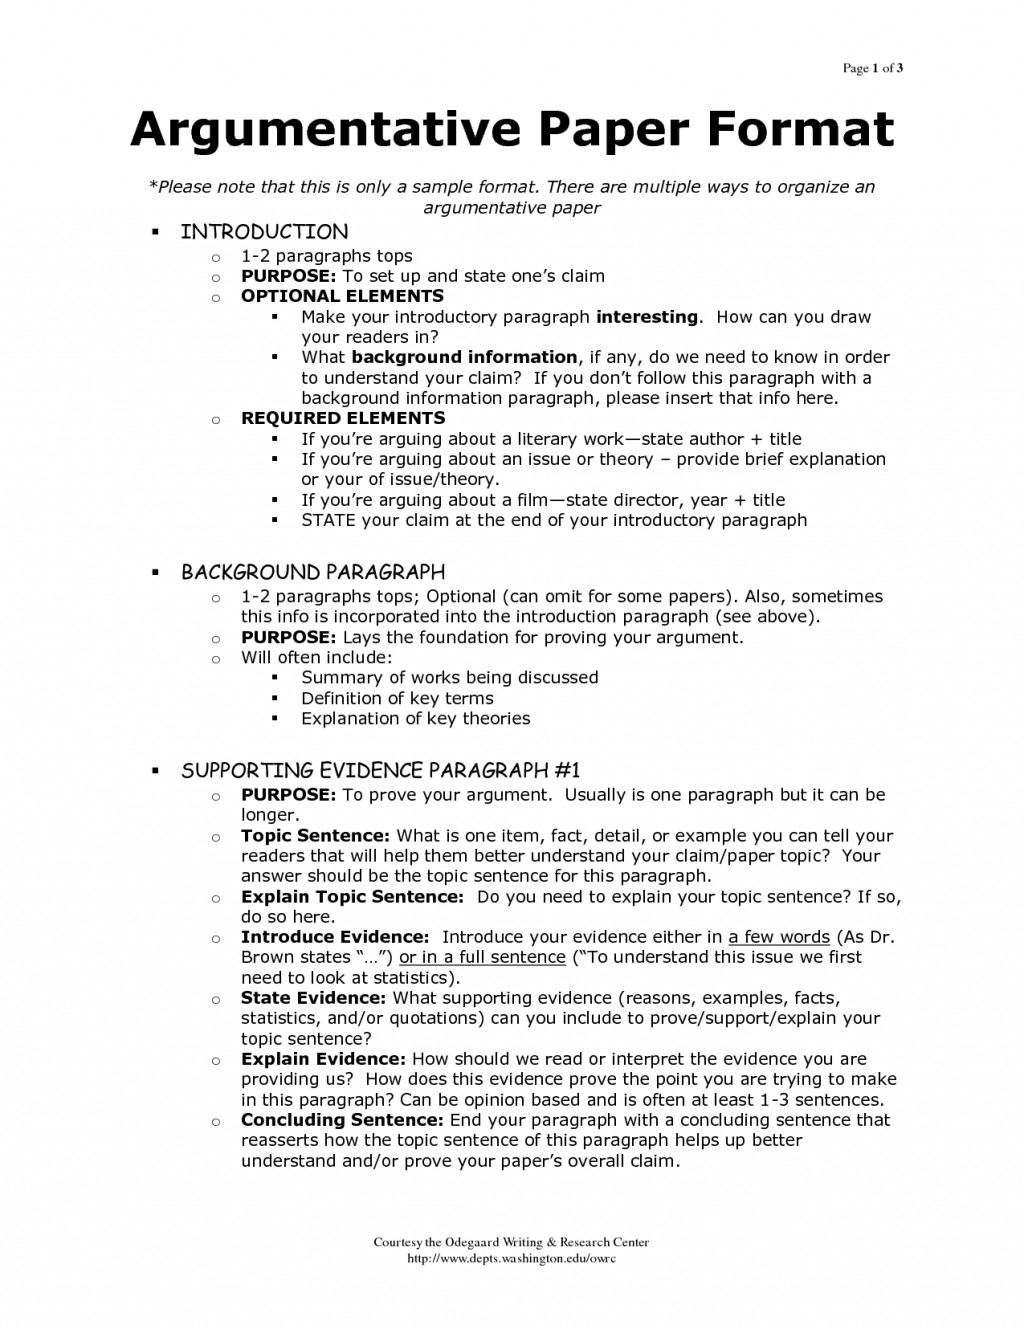 008 Write An Argumentative Essay Surprising Sample Example In Which You State And Defend Large